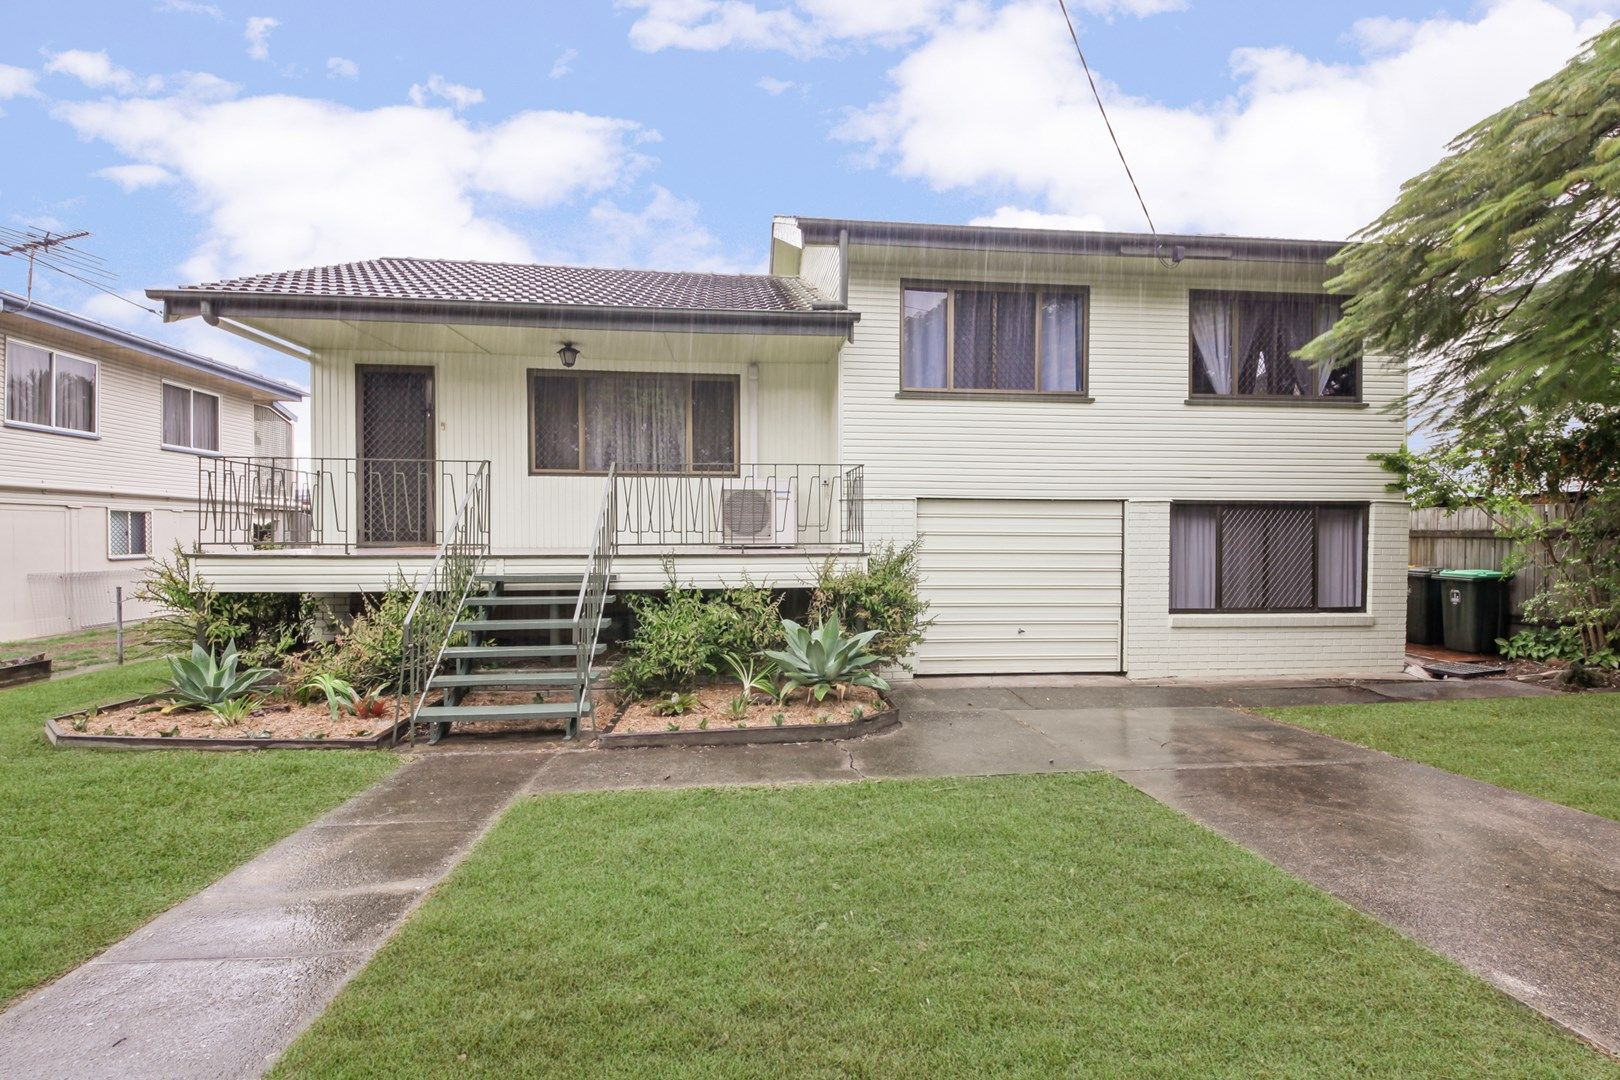 159 Handford Road, Zillmere QLD 4034, Image 0